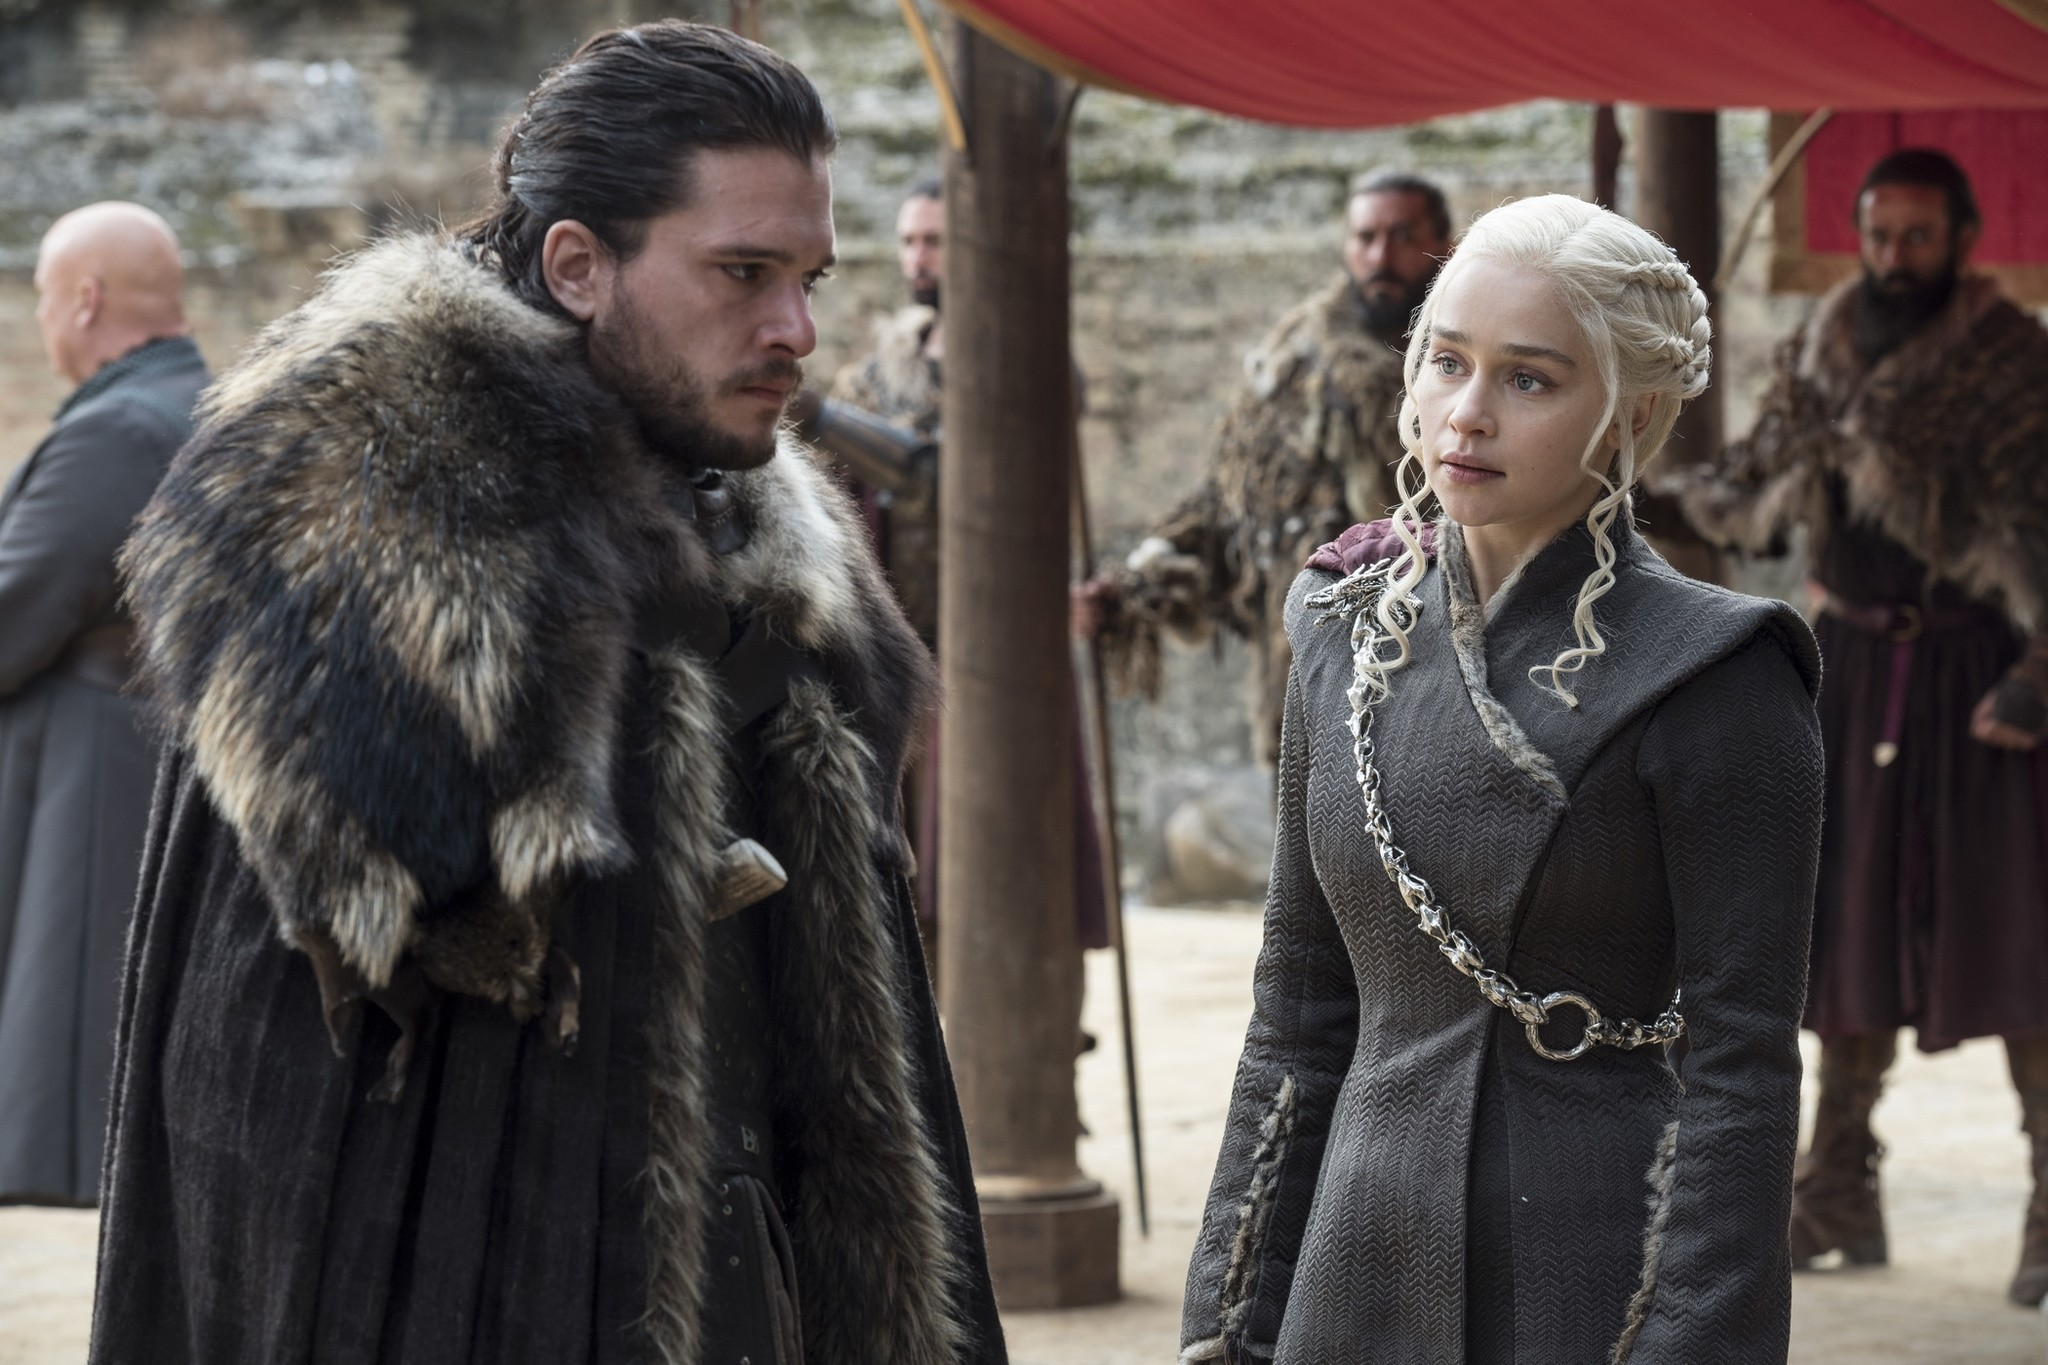 This image released by HBO shows Kit Harington, left, and Emilia Clarke on the season finale of ,Game of Thrones. (AP Photo)